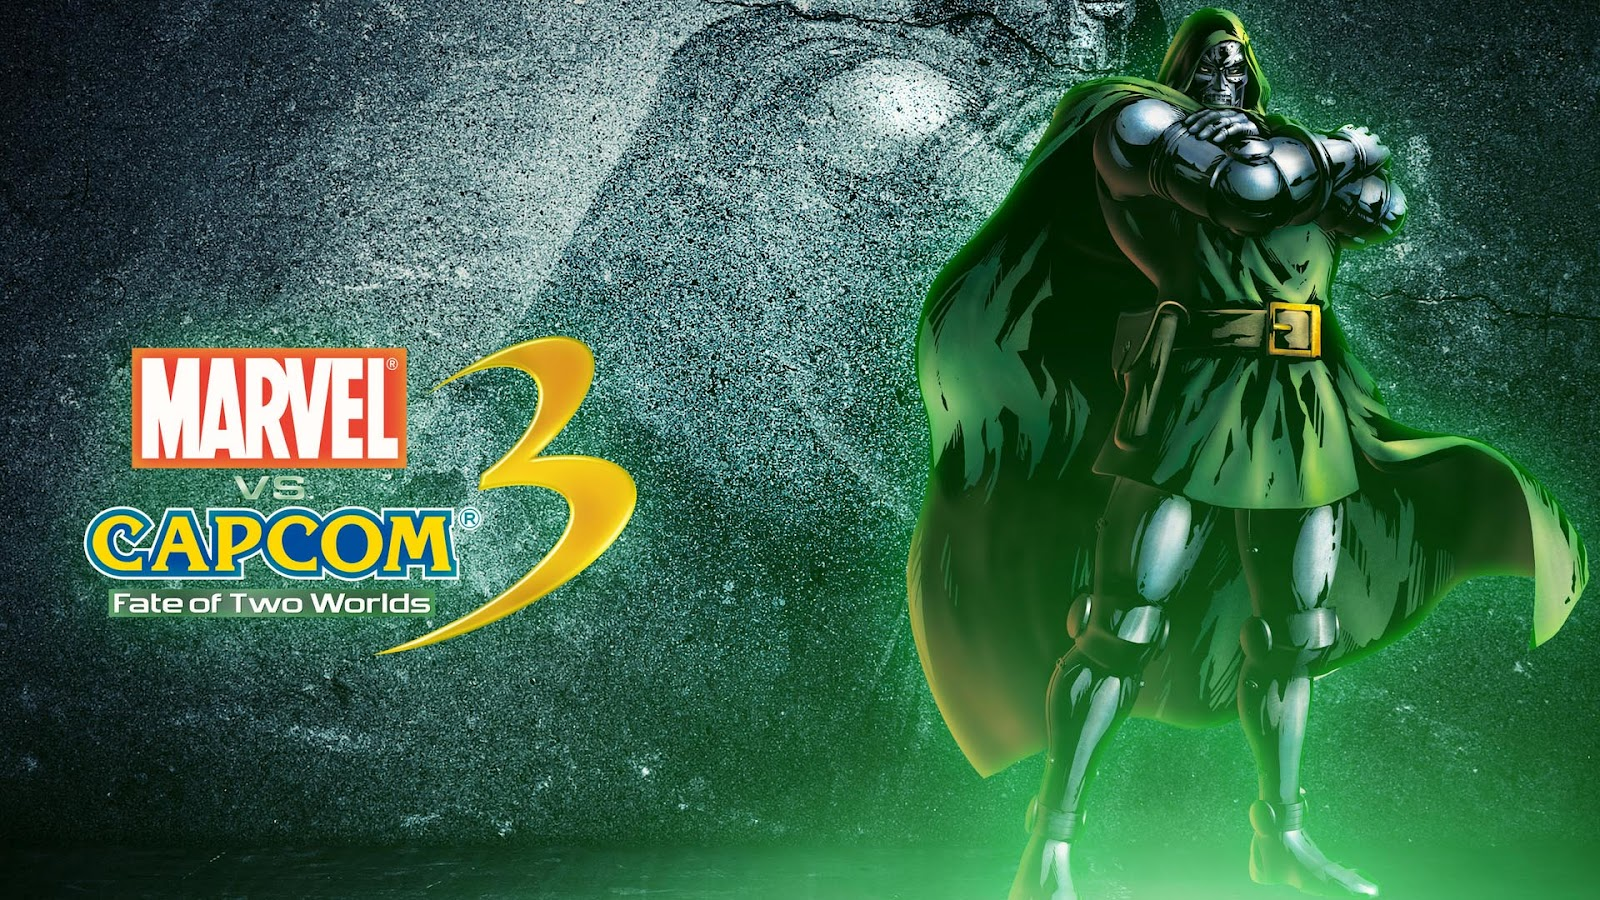 http://2.bp.blogspot.com/-wIWAEknBeCU/UBc13kS_NfI/AAAAAAAAH4c/f0lQ_ZWsyvY/s1600/marvel_vs_capcom_wallpaper_marvel-vs-capcom-3-doctor-doom-2703-1920x1080.jpg